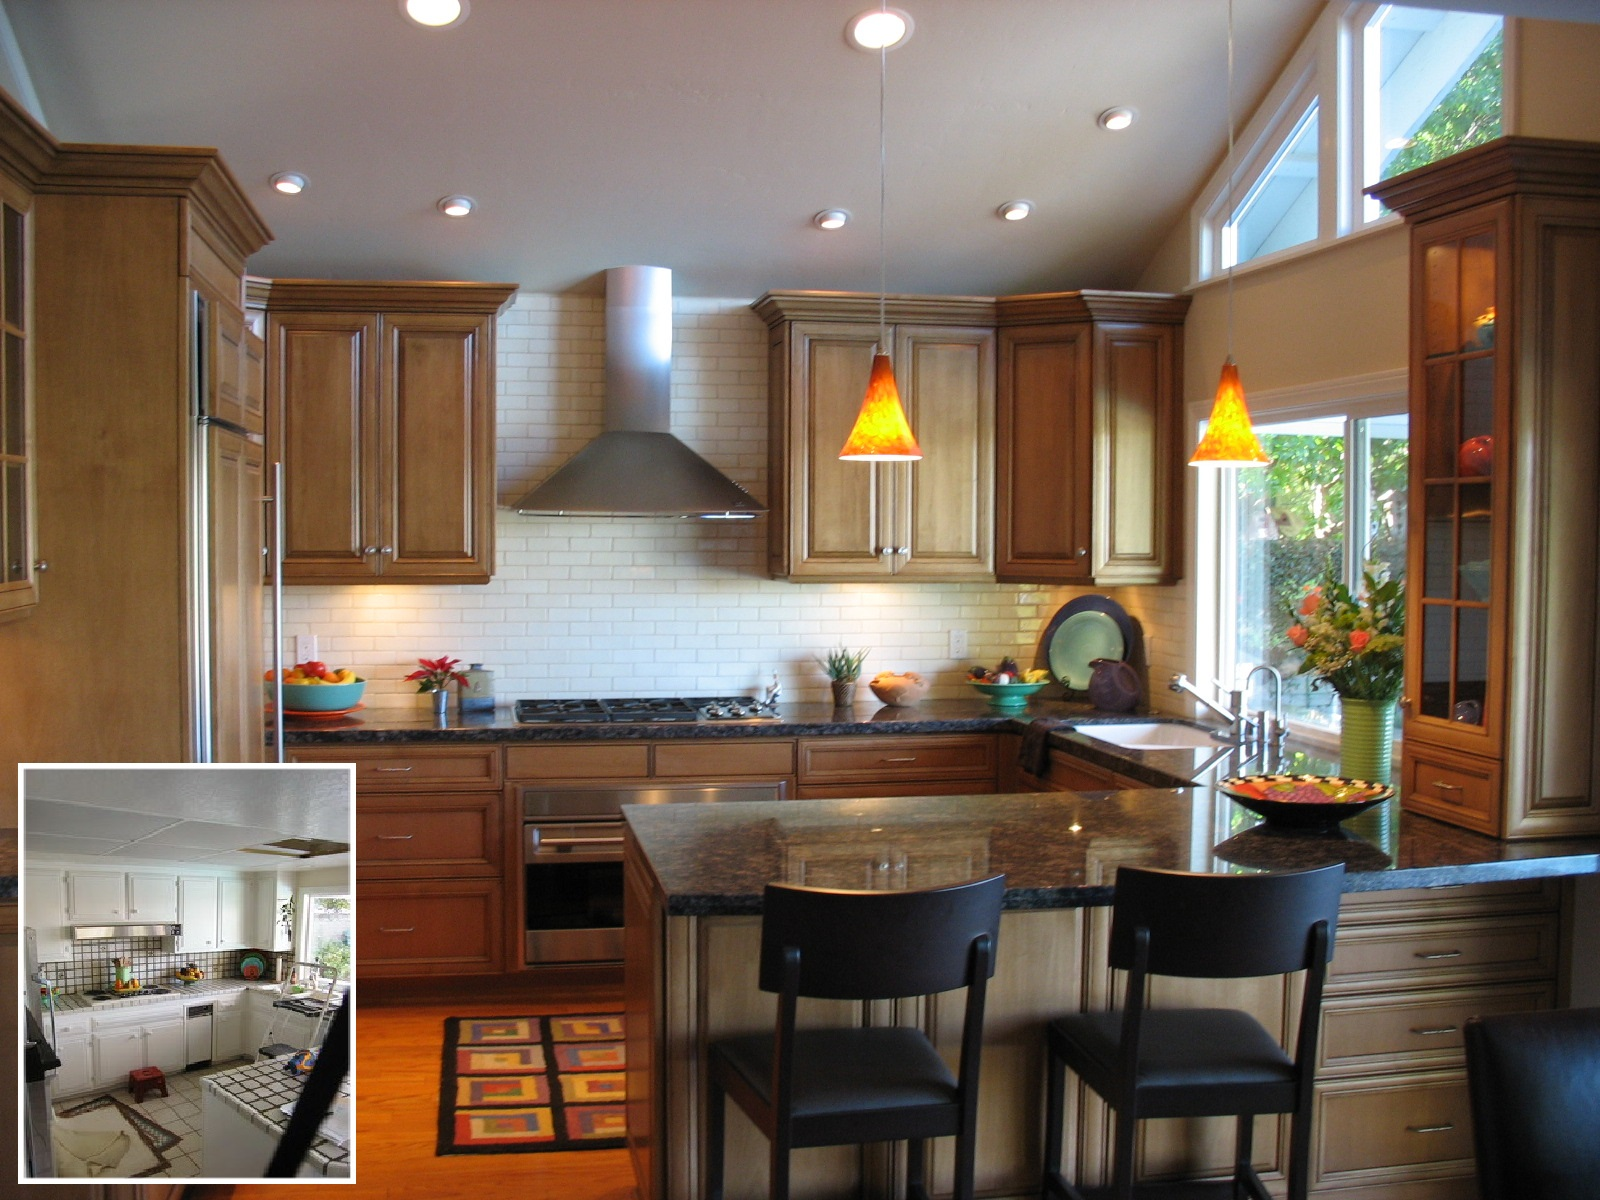 Laguna Niguel Traditional kitchen B4aA